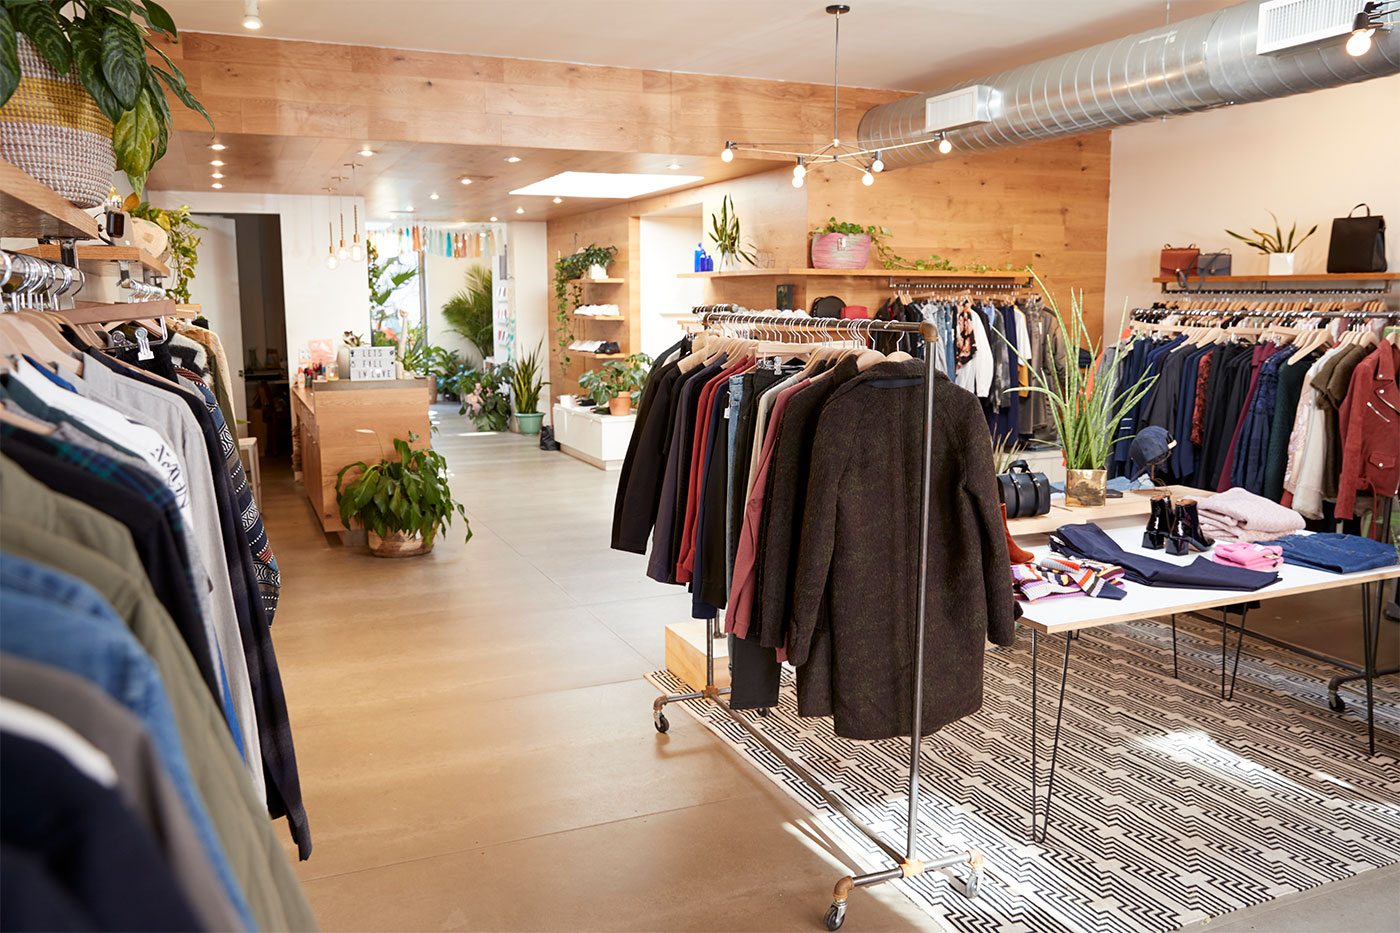 Cleaning Services for Retail - Retail